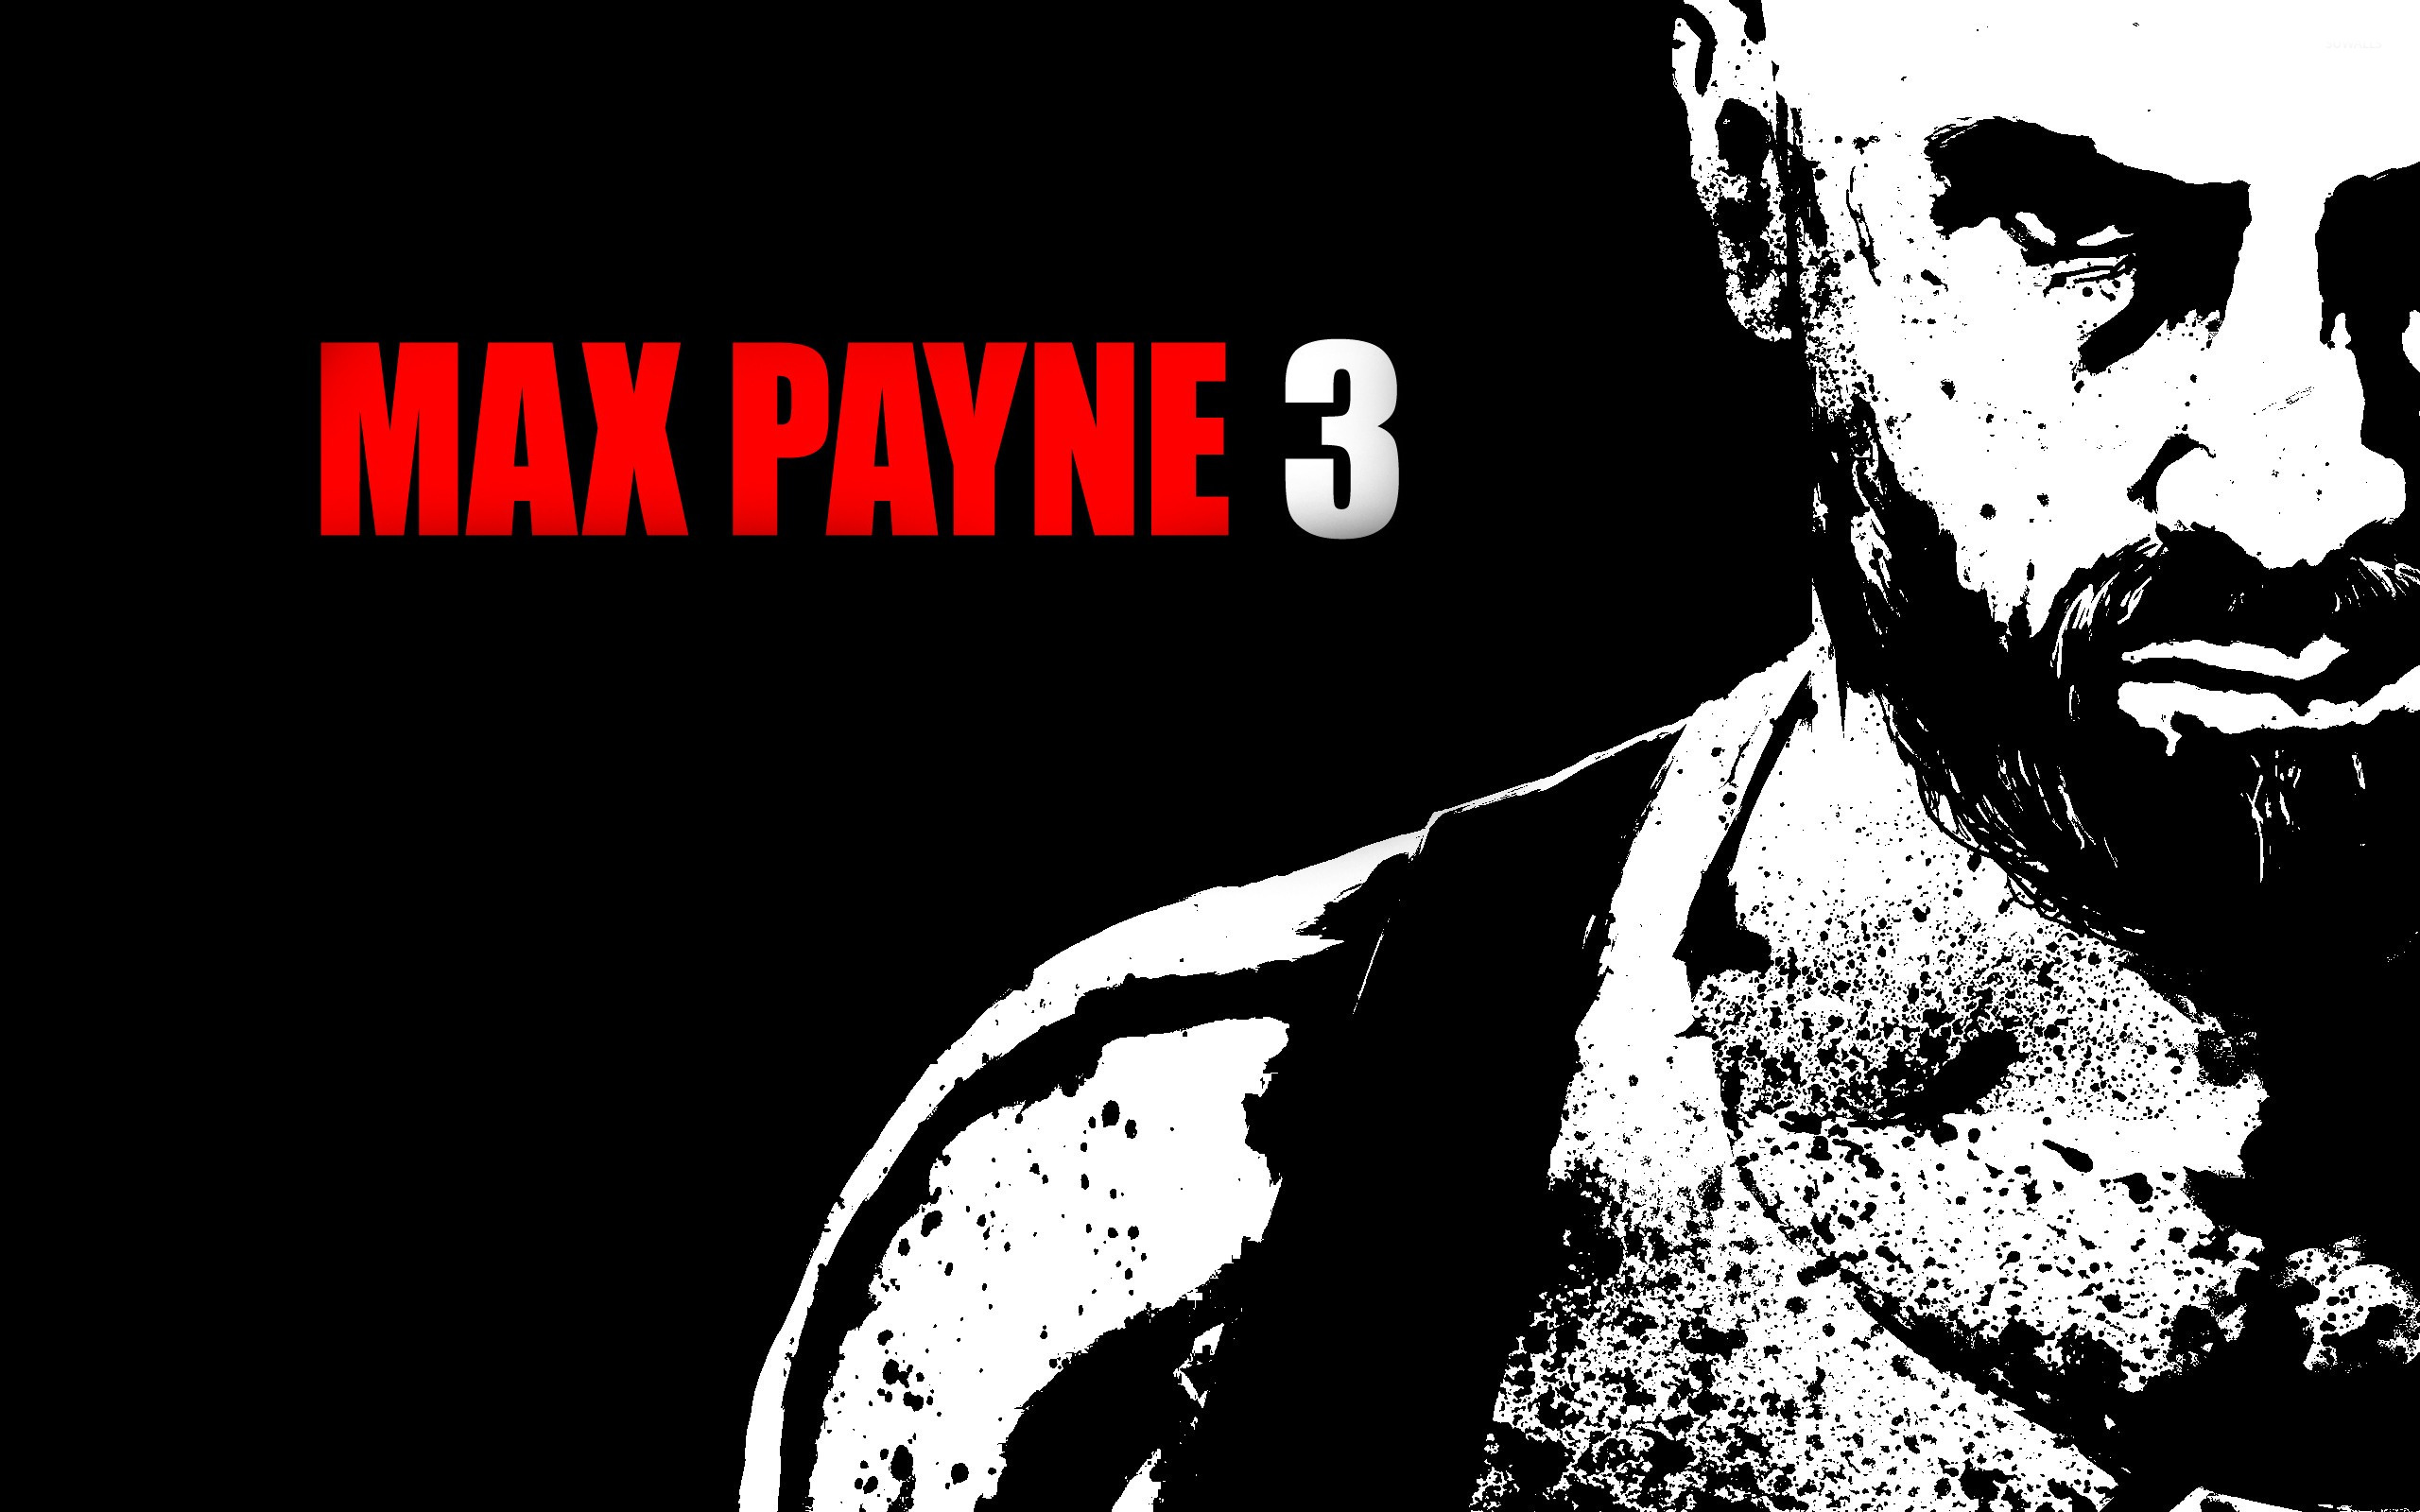 Max Payne 3 Wallpaper Game Wallpapers 16141